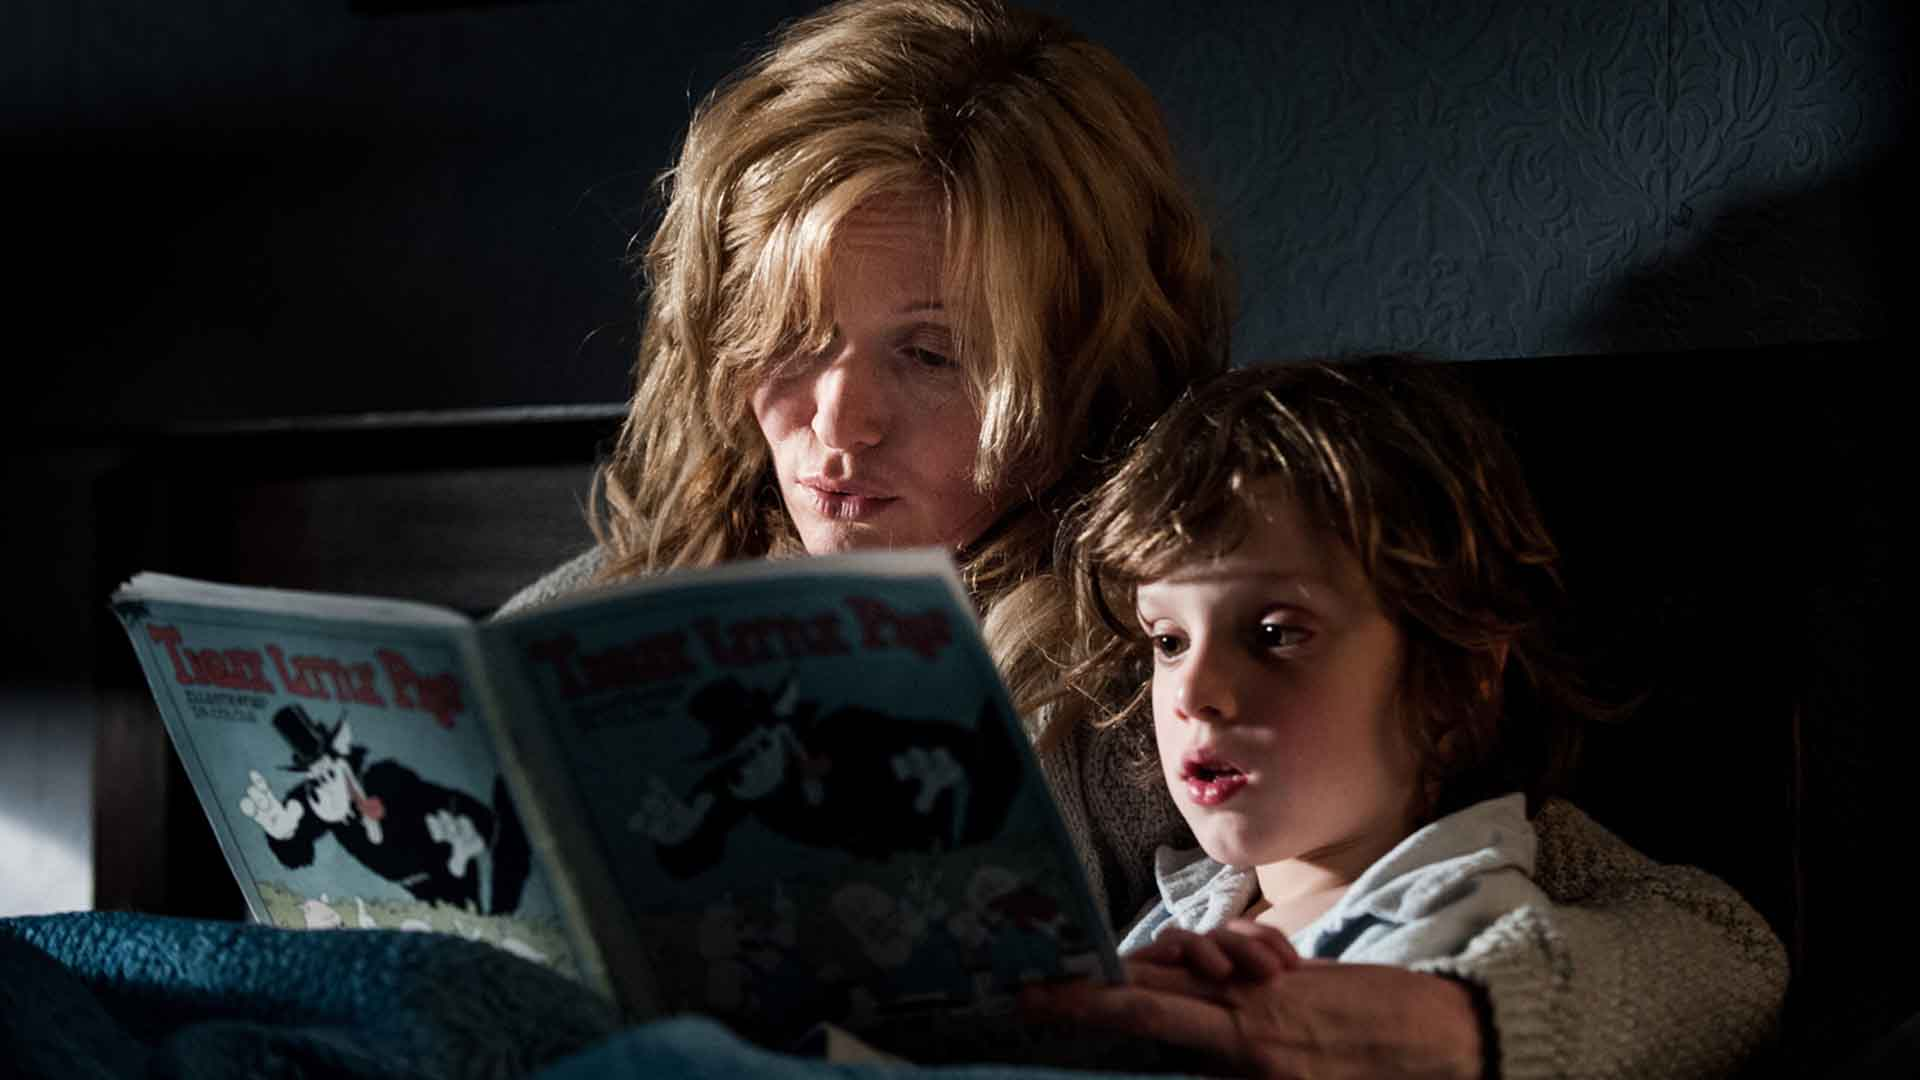 Elsie Davis and Noah Wiseman reading a book in The Babadook